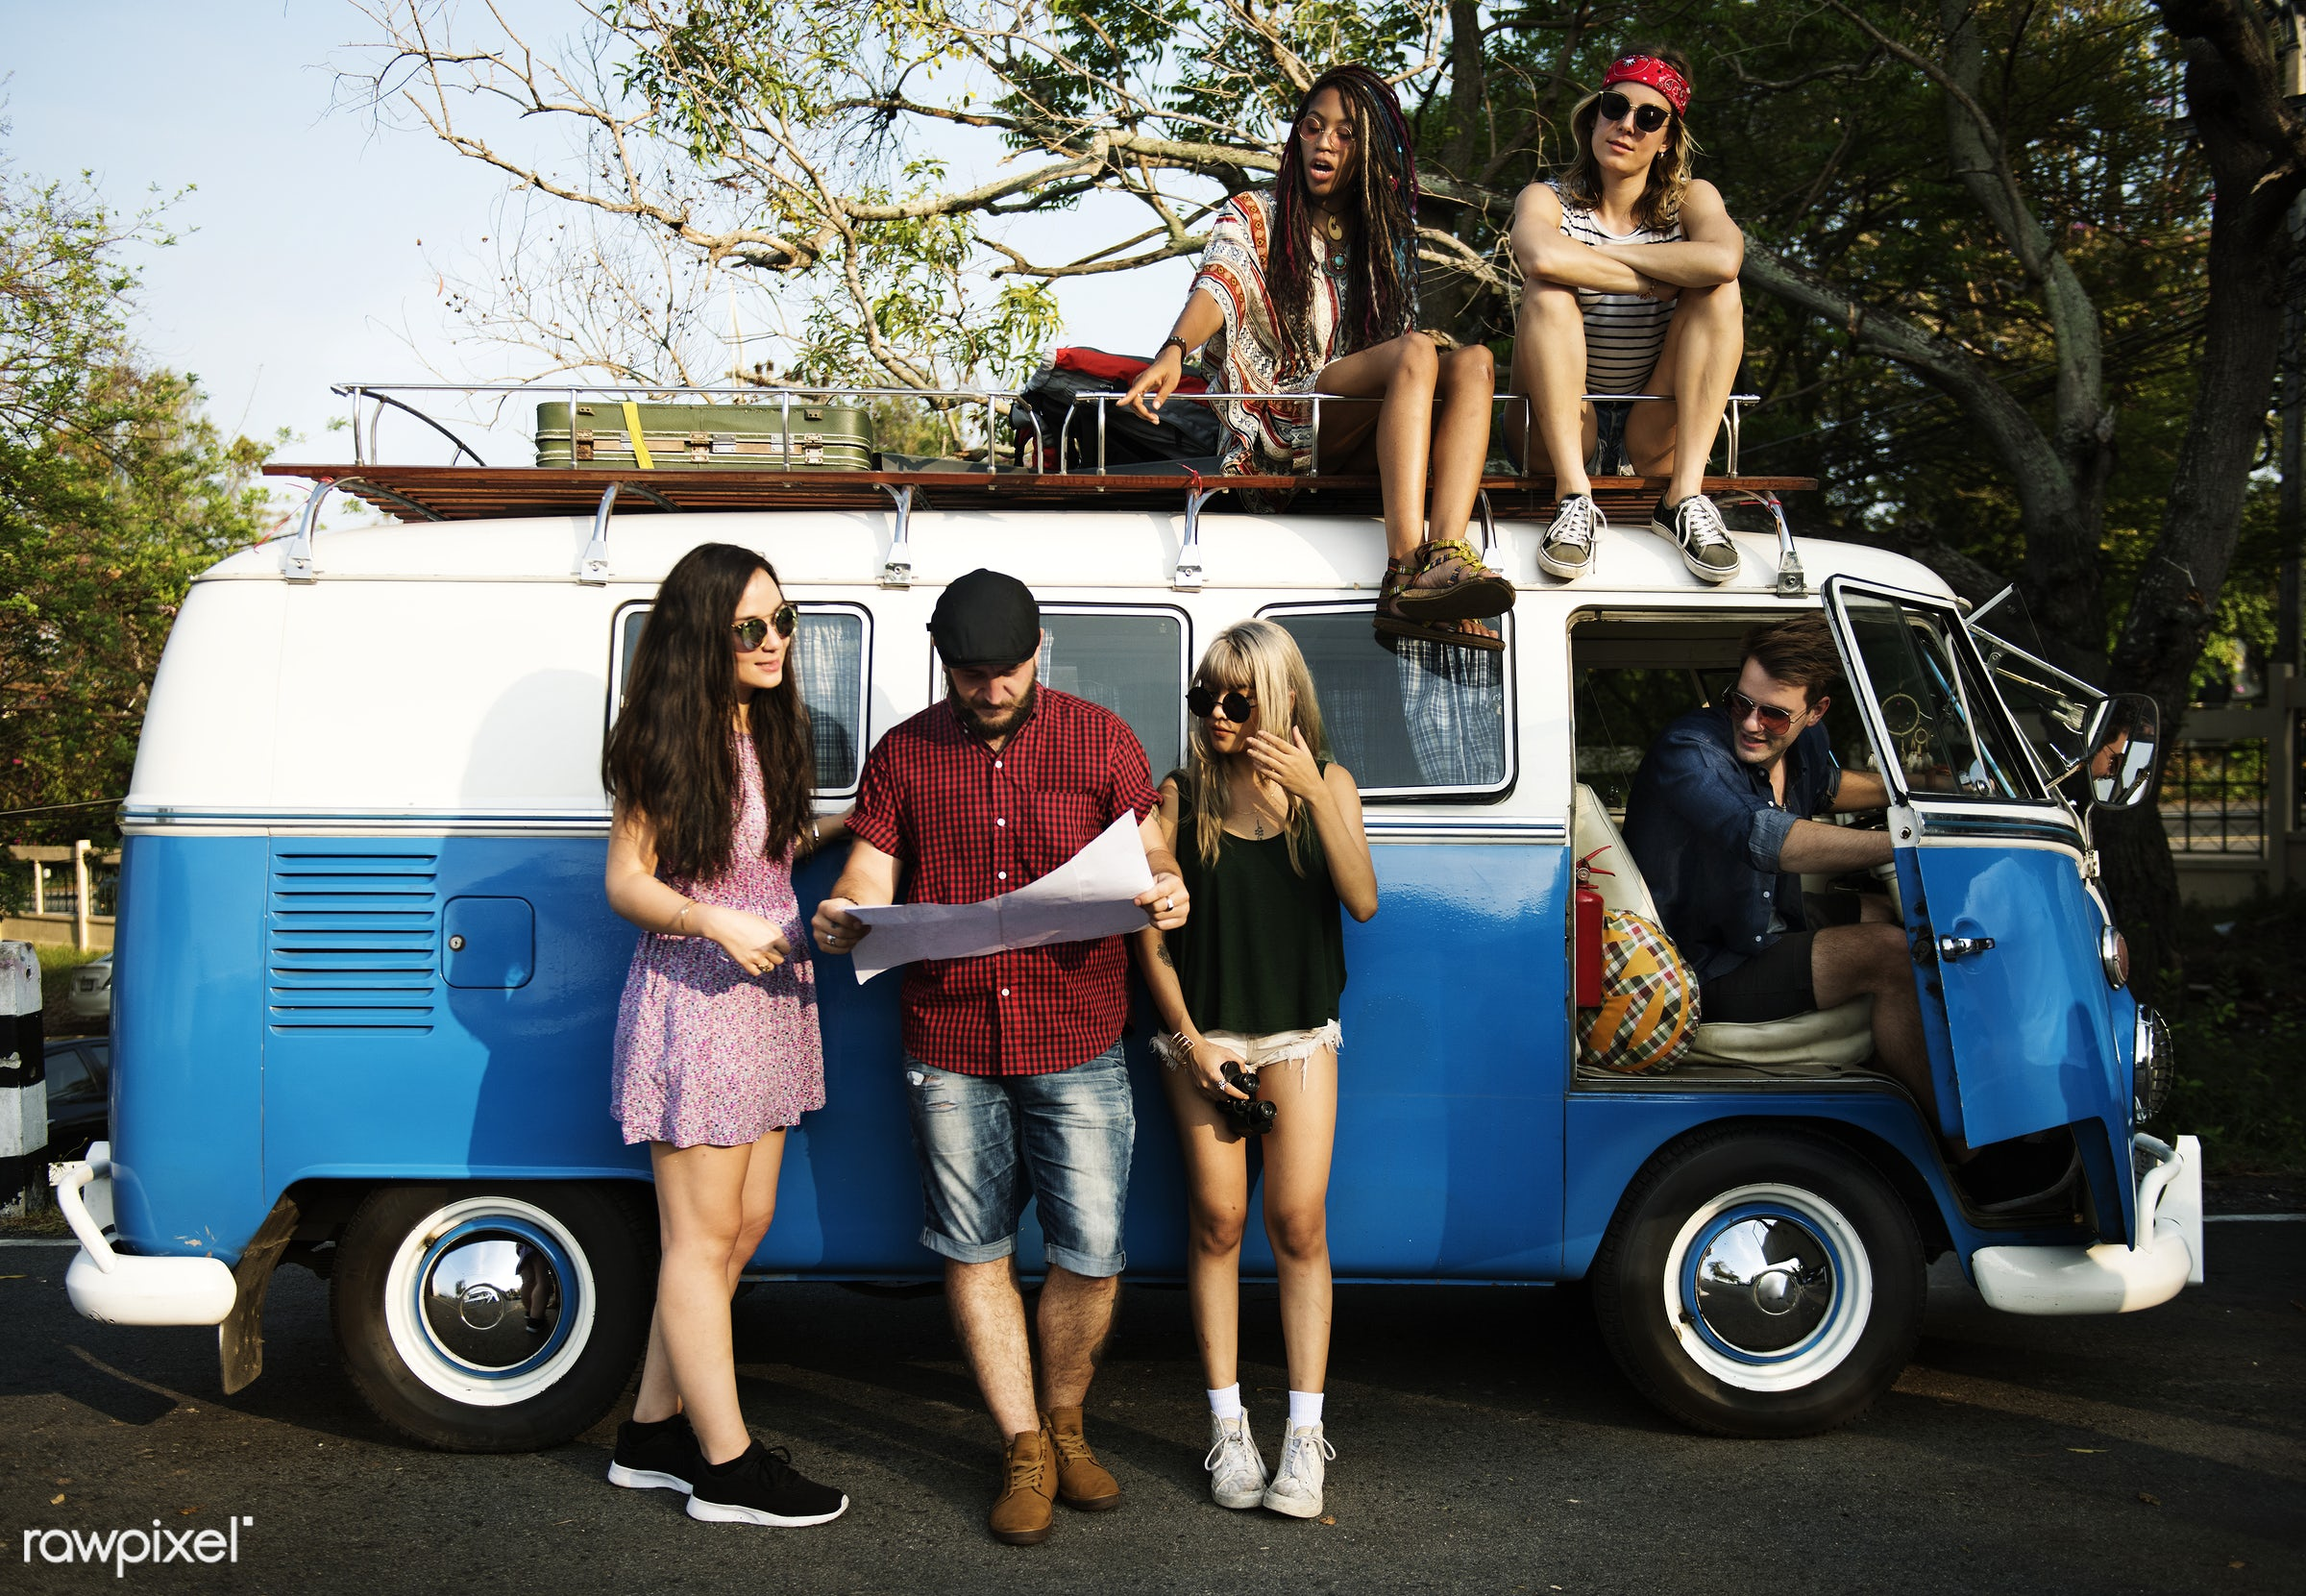 Diverse group of people enjoying a road trip and festival - van, street, roof, adult, adventure, check, direction,...